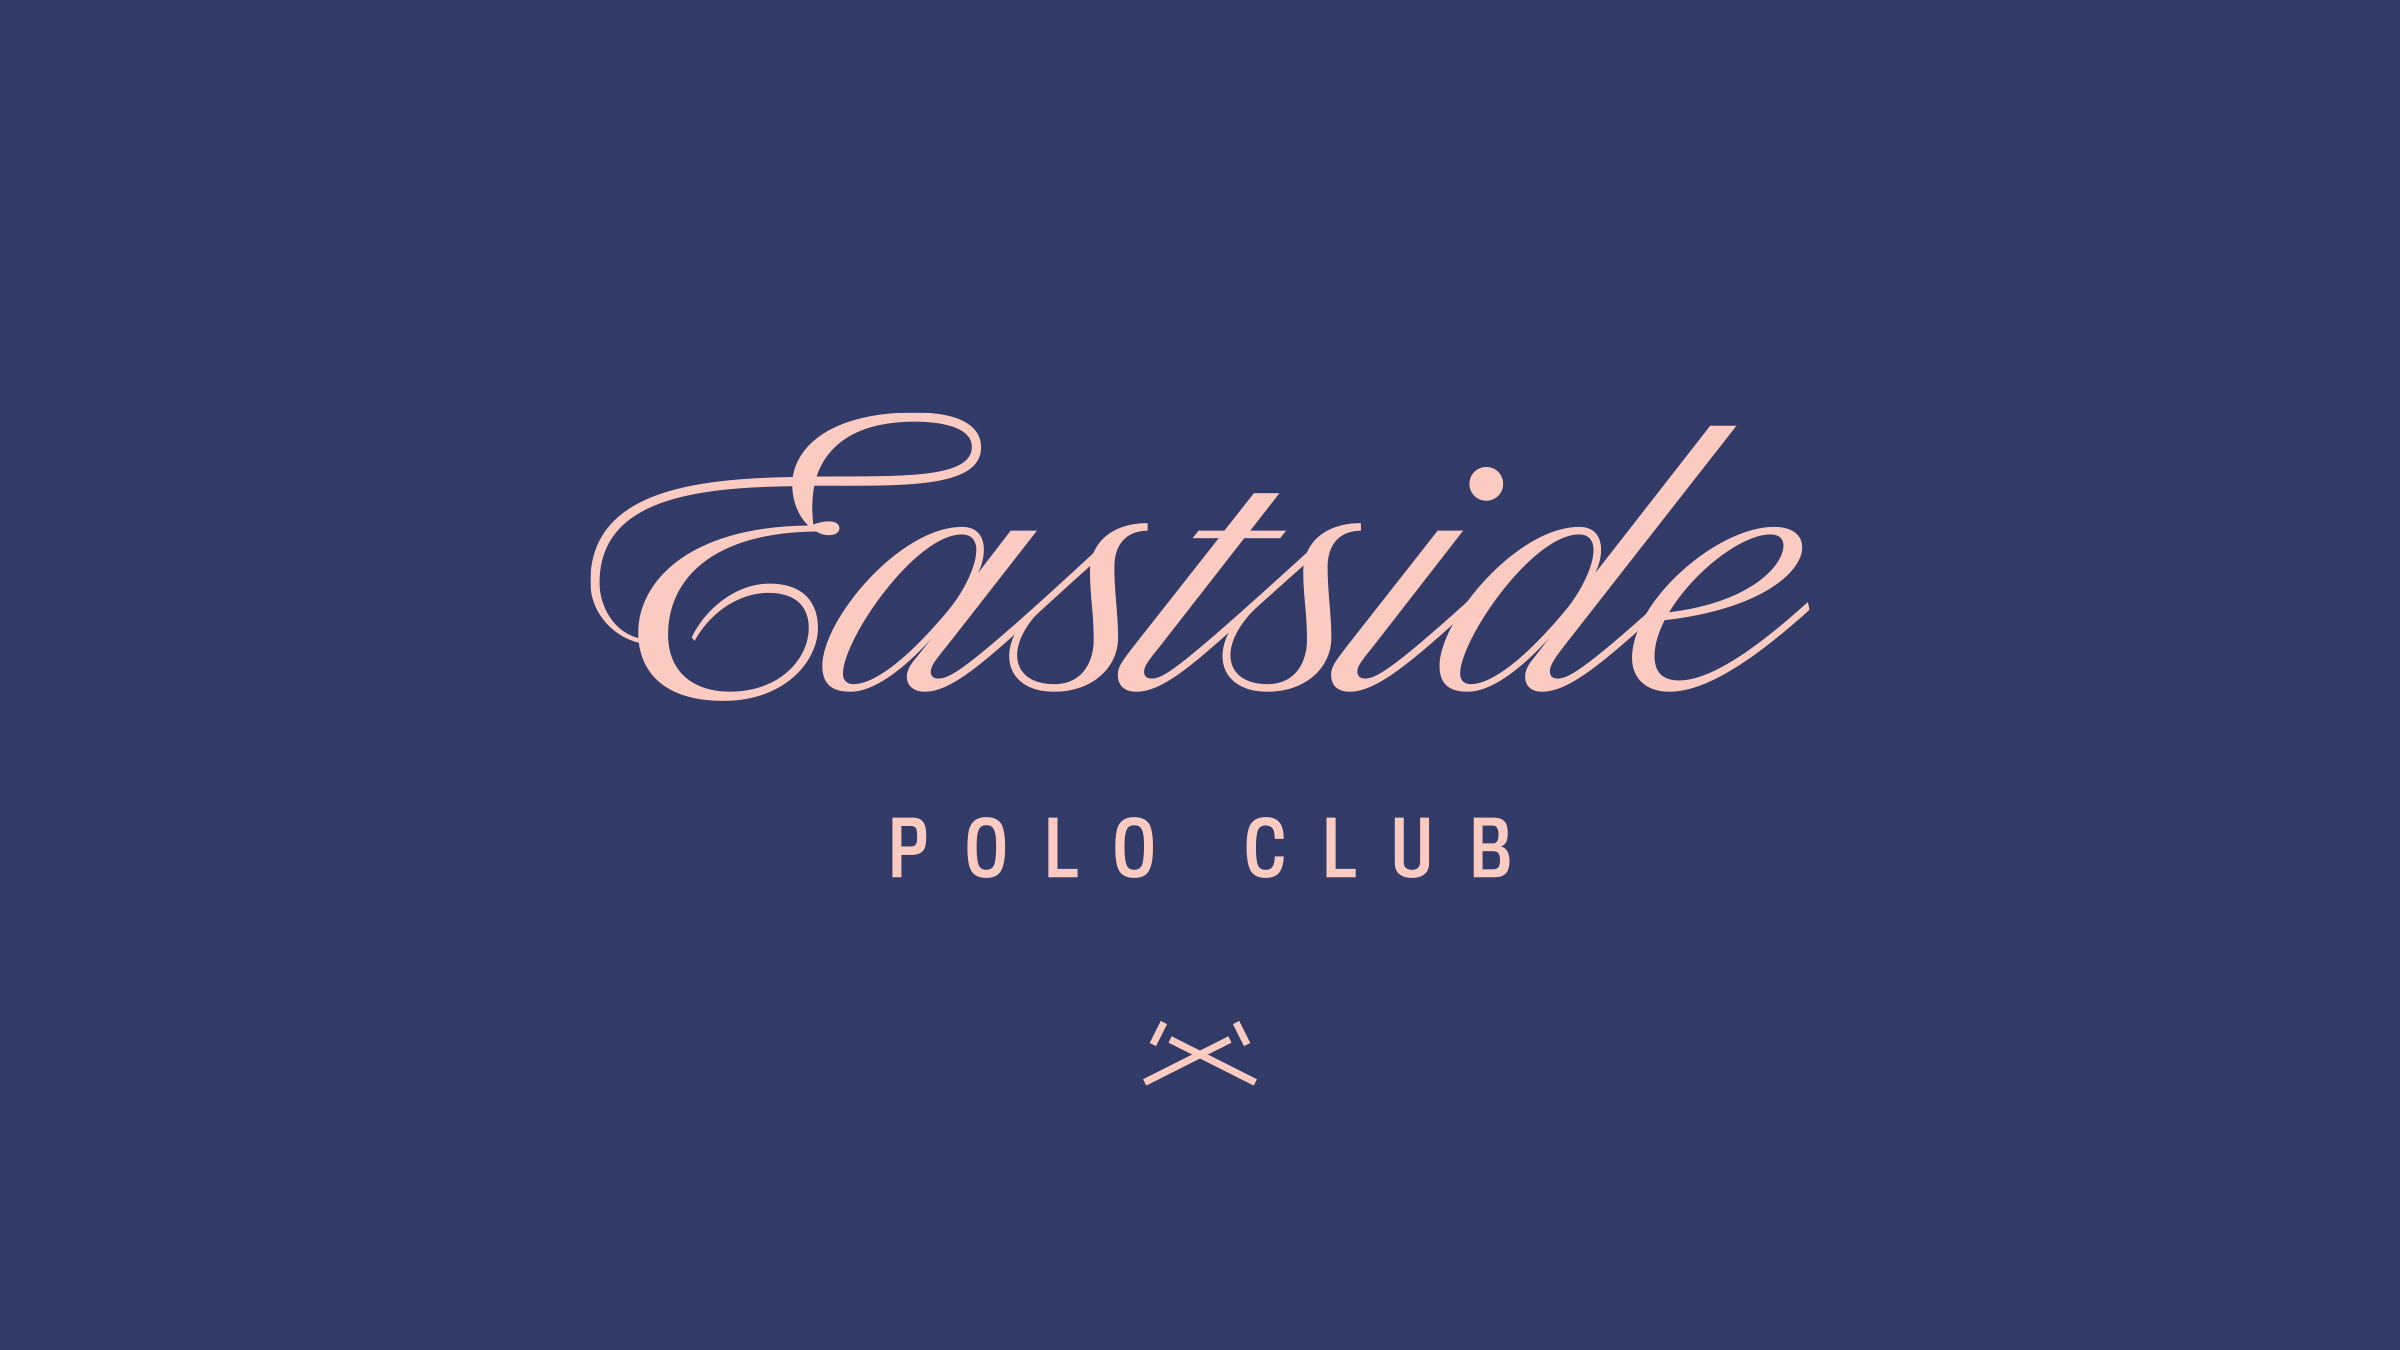 Eastside Polo Club brand logo pink on purple